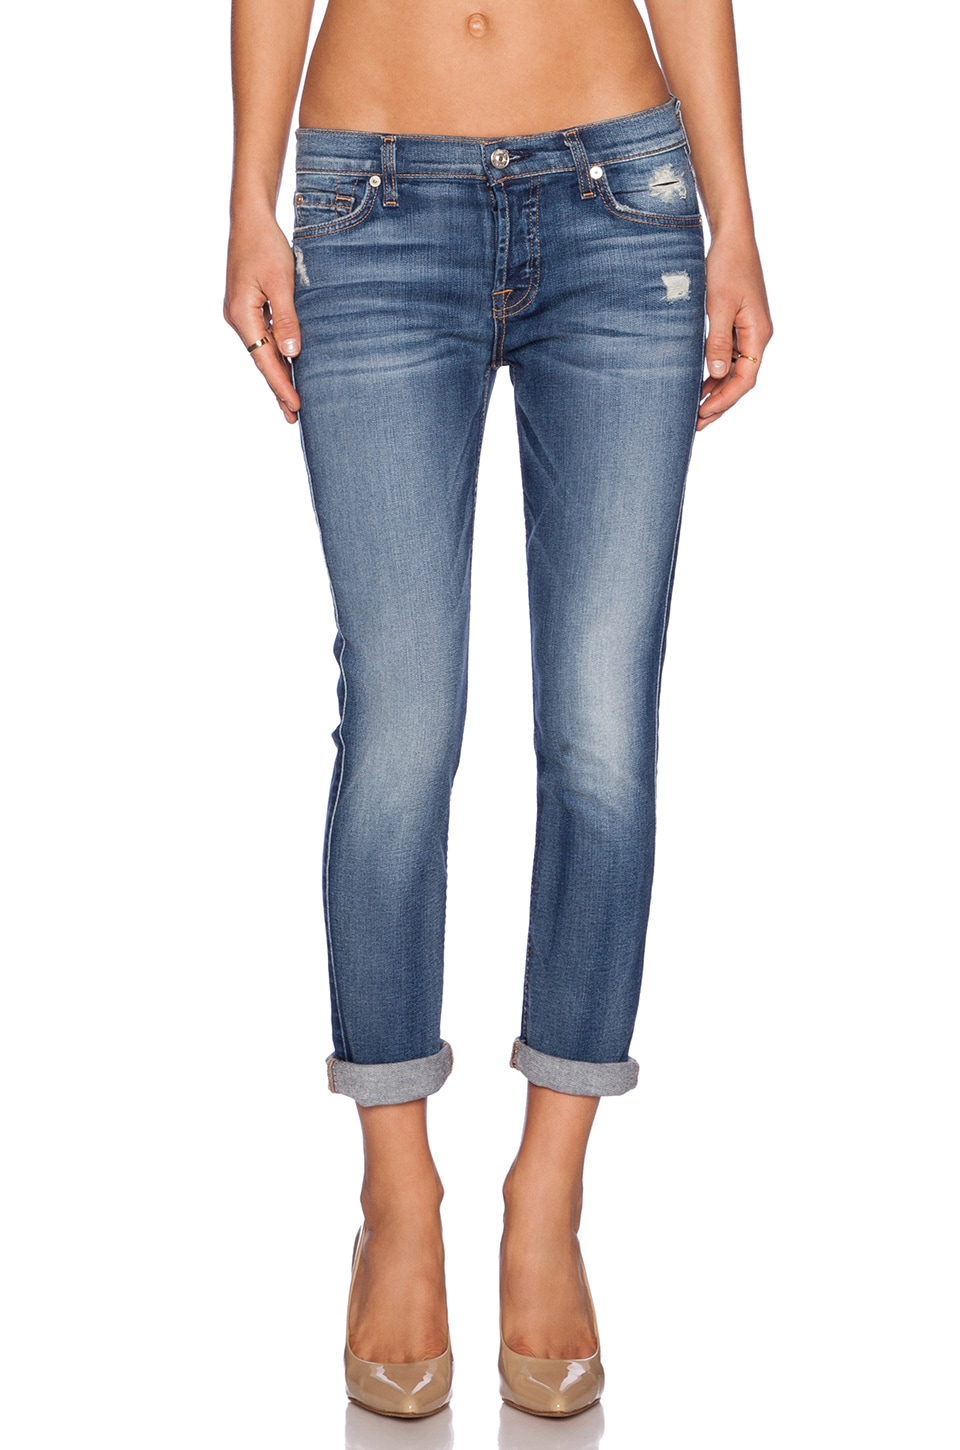 7 For All Mankind Josefina Boyfriend in Distressed Authentic Light